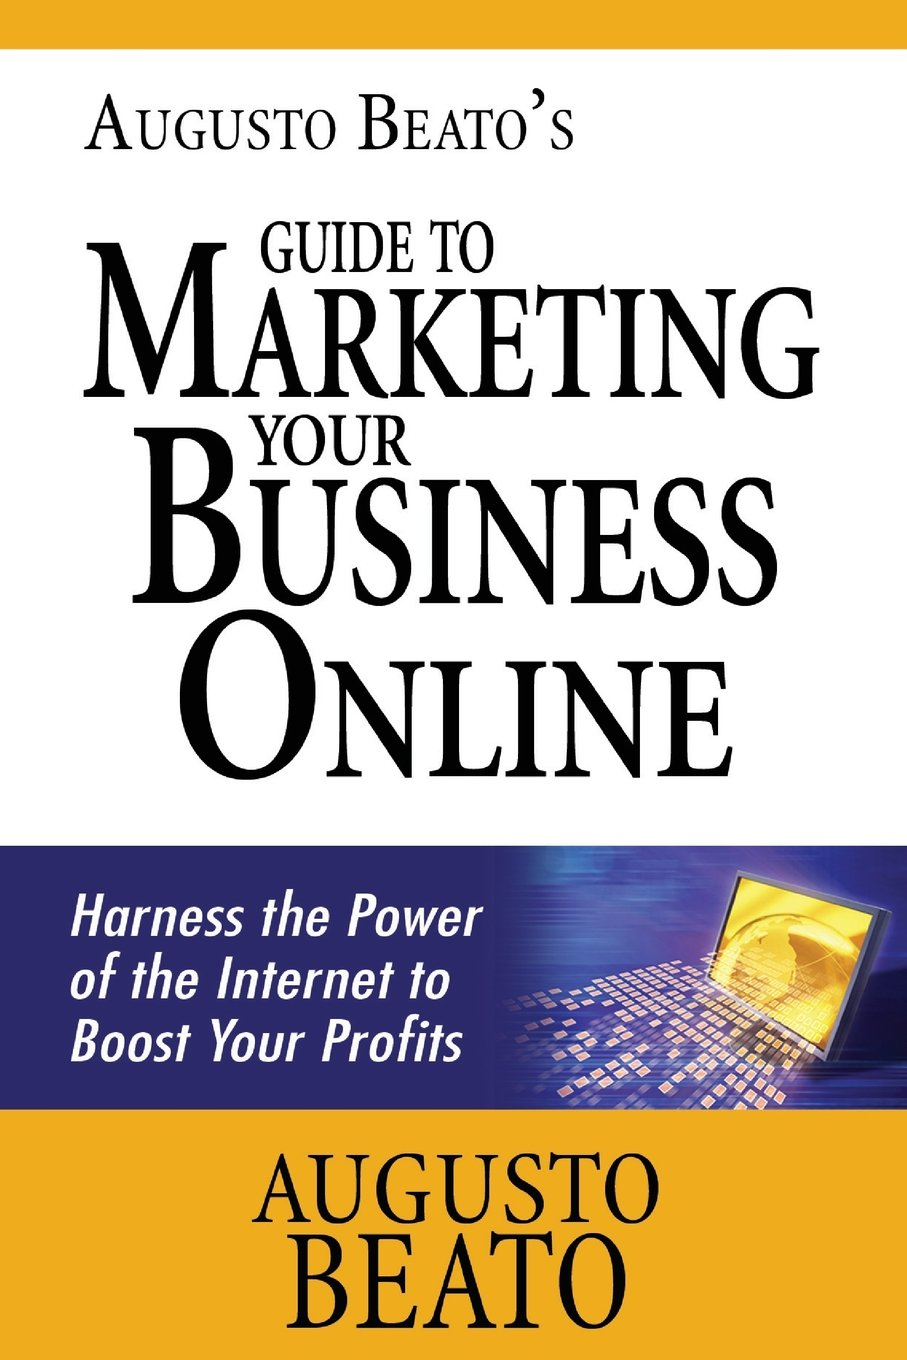 Augusto Beato's Guide to Marketing Your Business Online: Harness the Power of the Internet to Boost Your Profits pdf